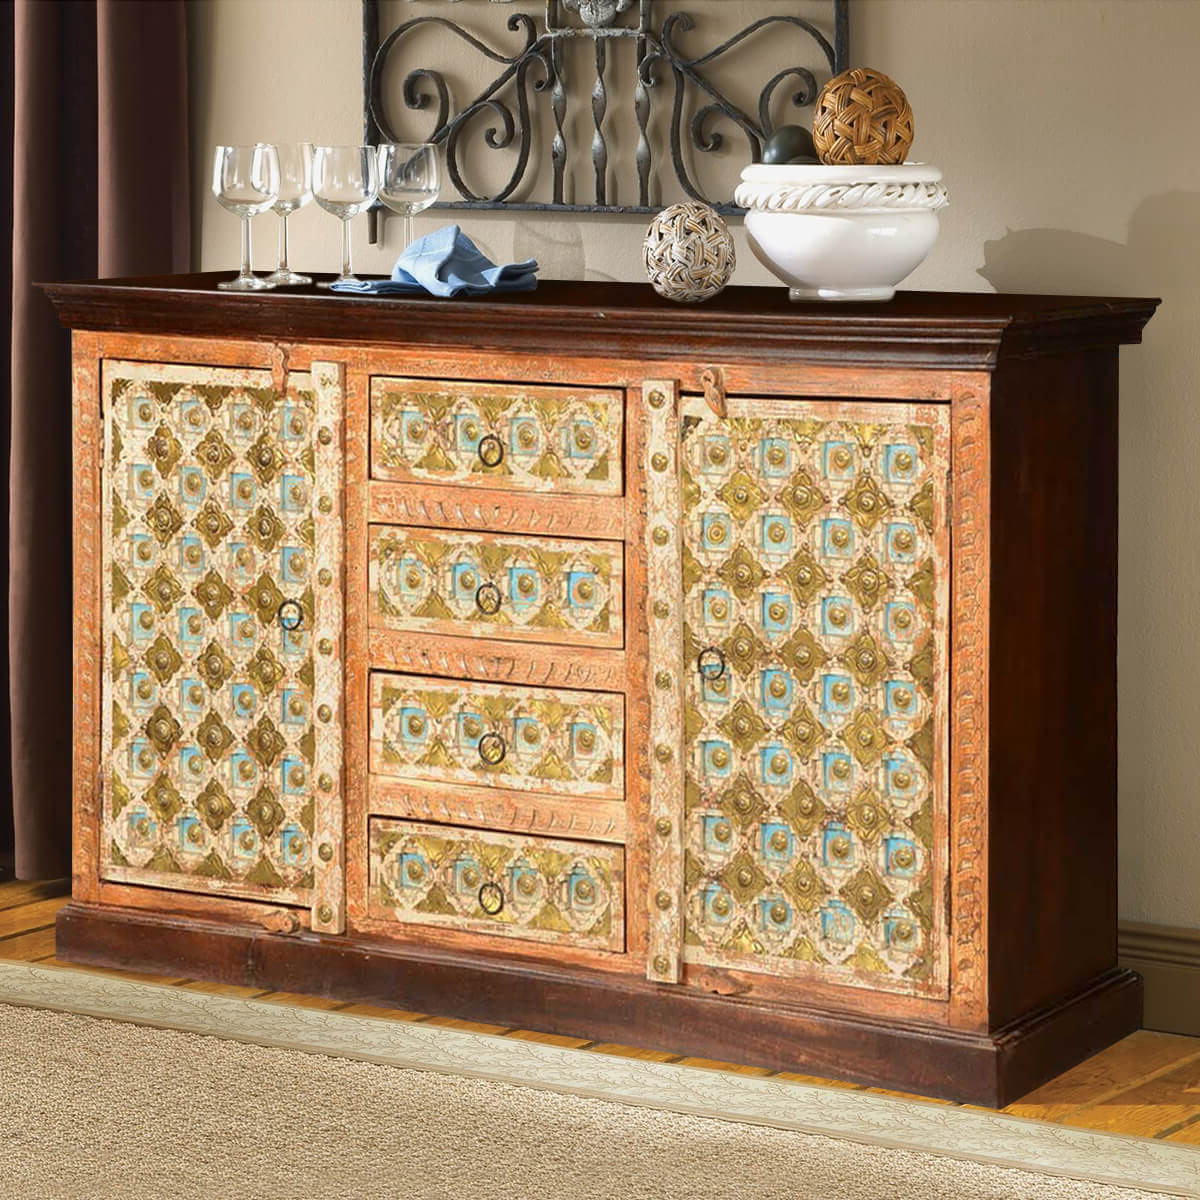 Turkish Handcrafted Brass Inlay Mango Wood 4 Drawer Large Sideboard Inside Colborne Sideboards (View 18 of 20)